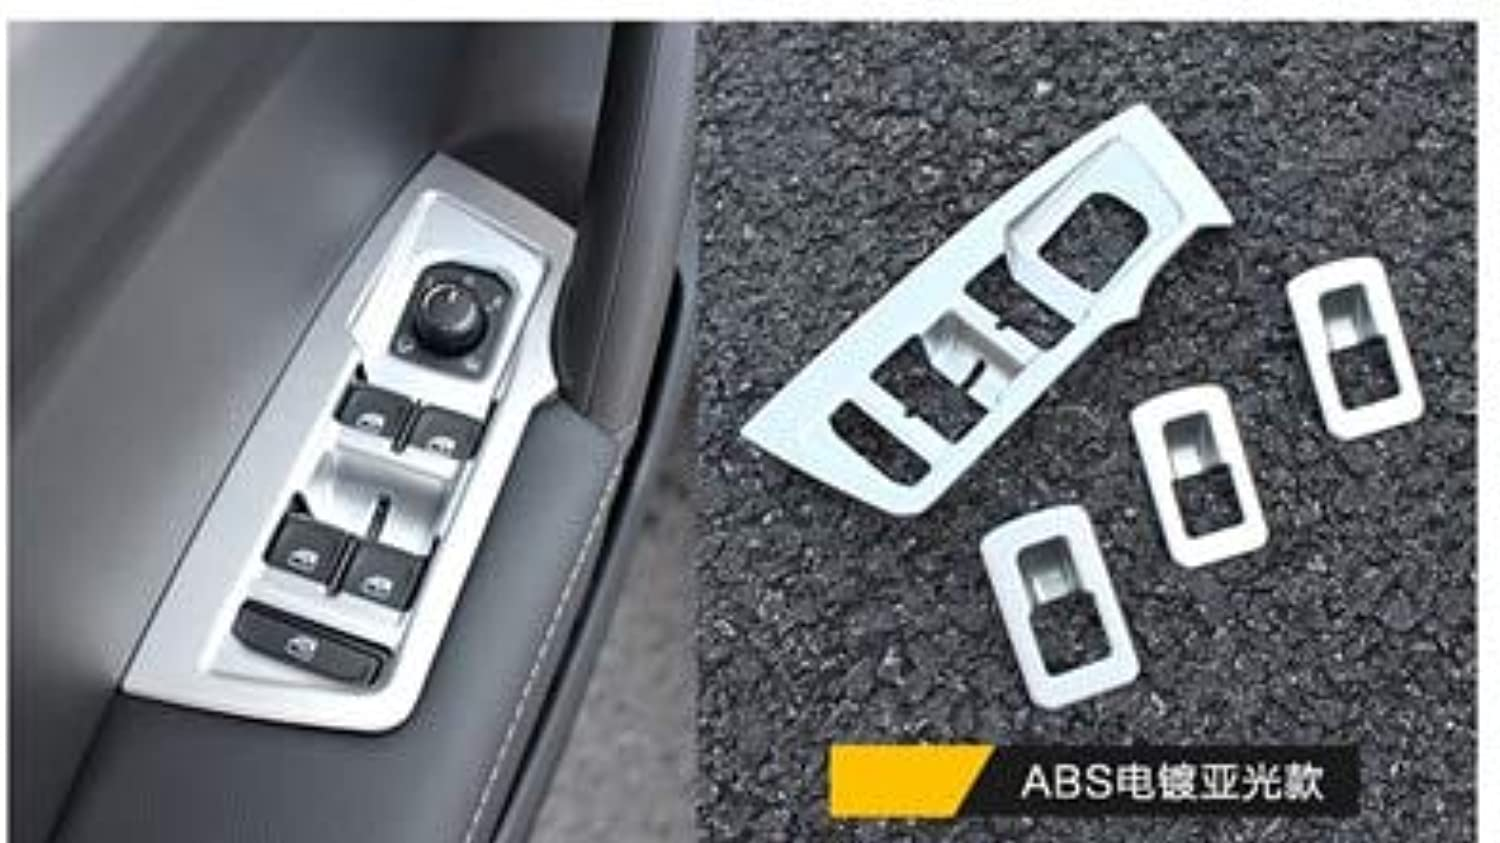 ABS Chrome 4pcs lot Interior Door Window Switch Panel Cover Trim Bezel MOLDING Garnish for 20162018 Volkswagen VW Tiguan mk2  (color Name  A)